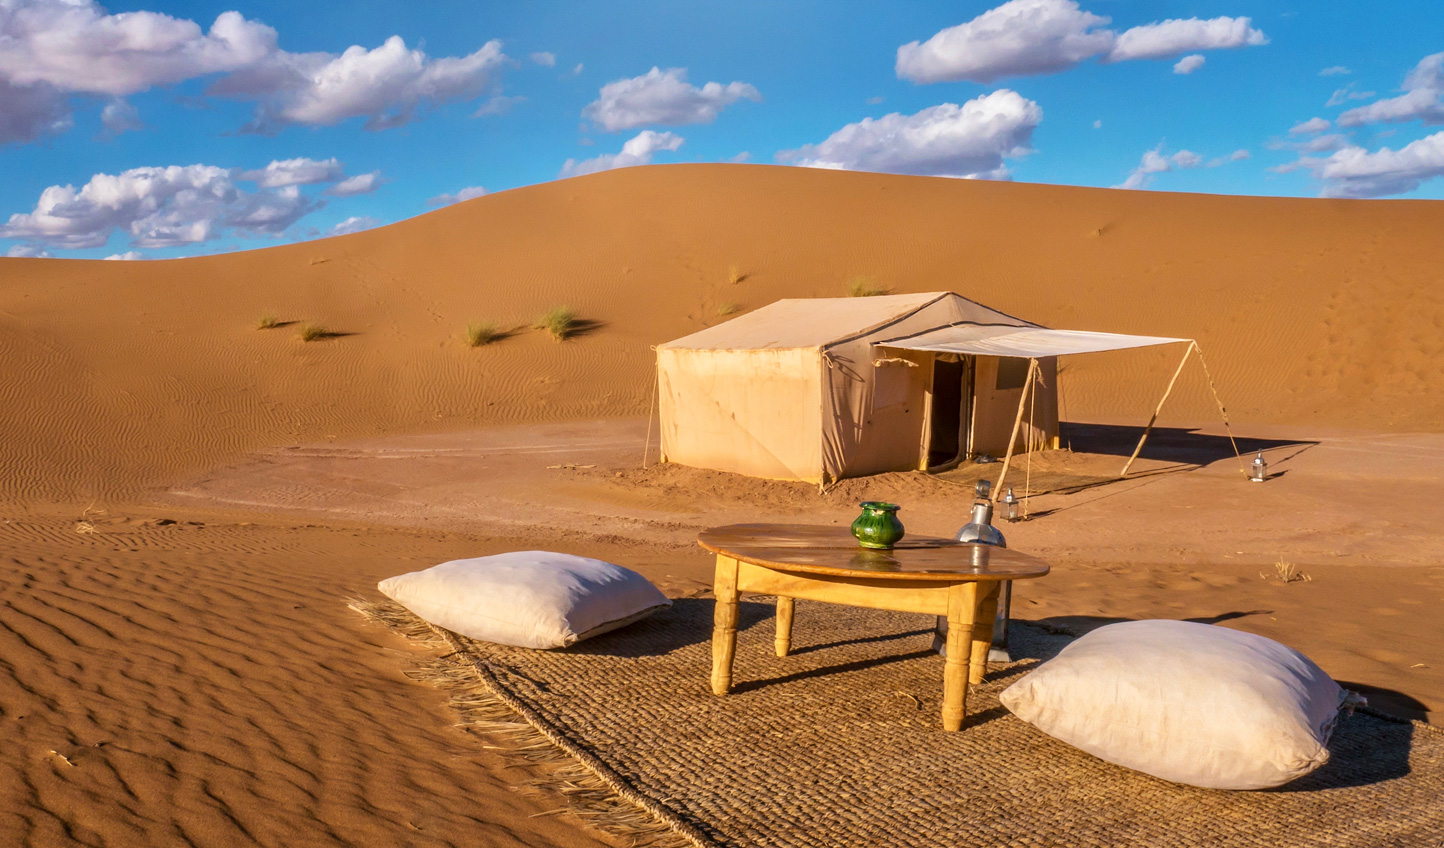 Bed down at your luxurious private camp in the Sahara